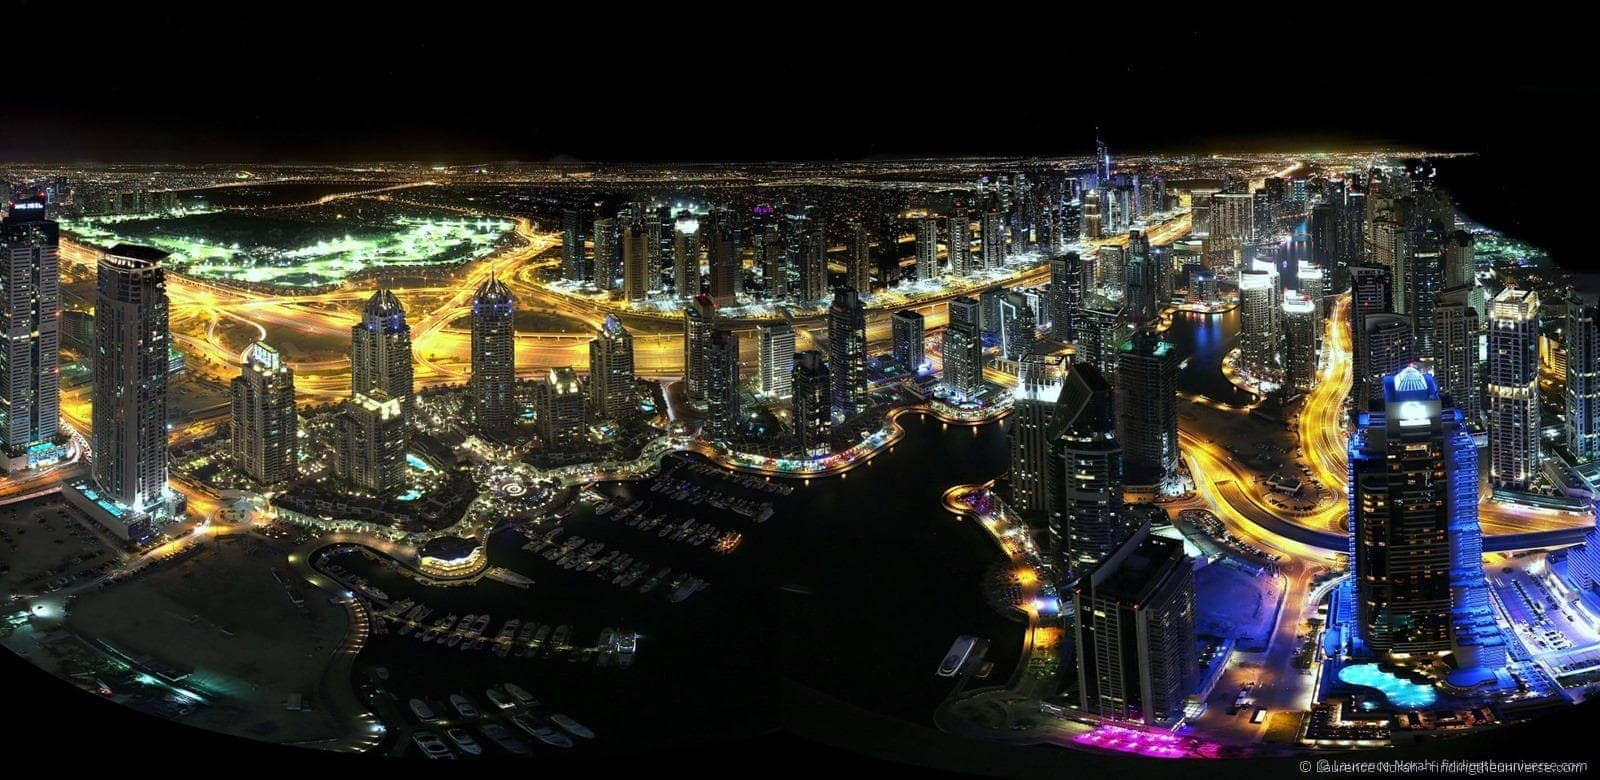 Dubai skyline scaled